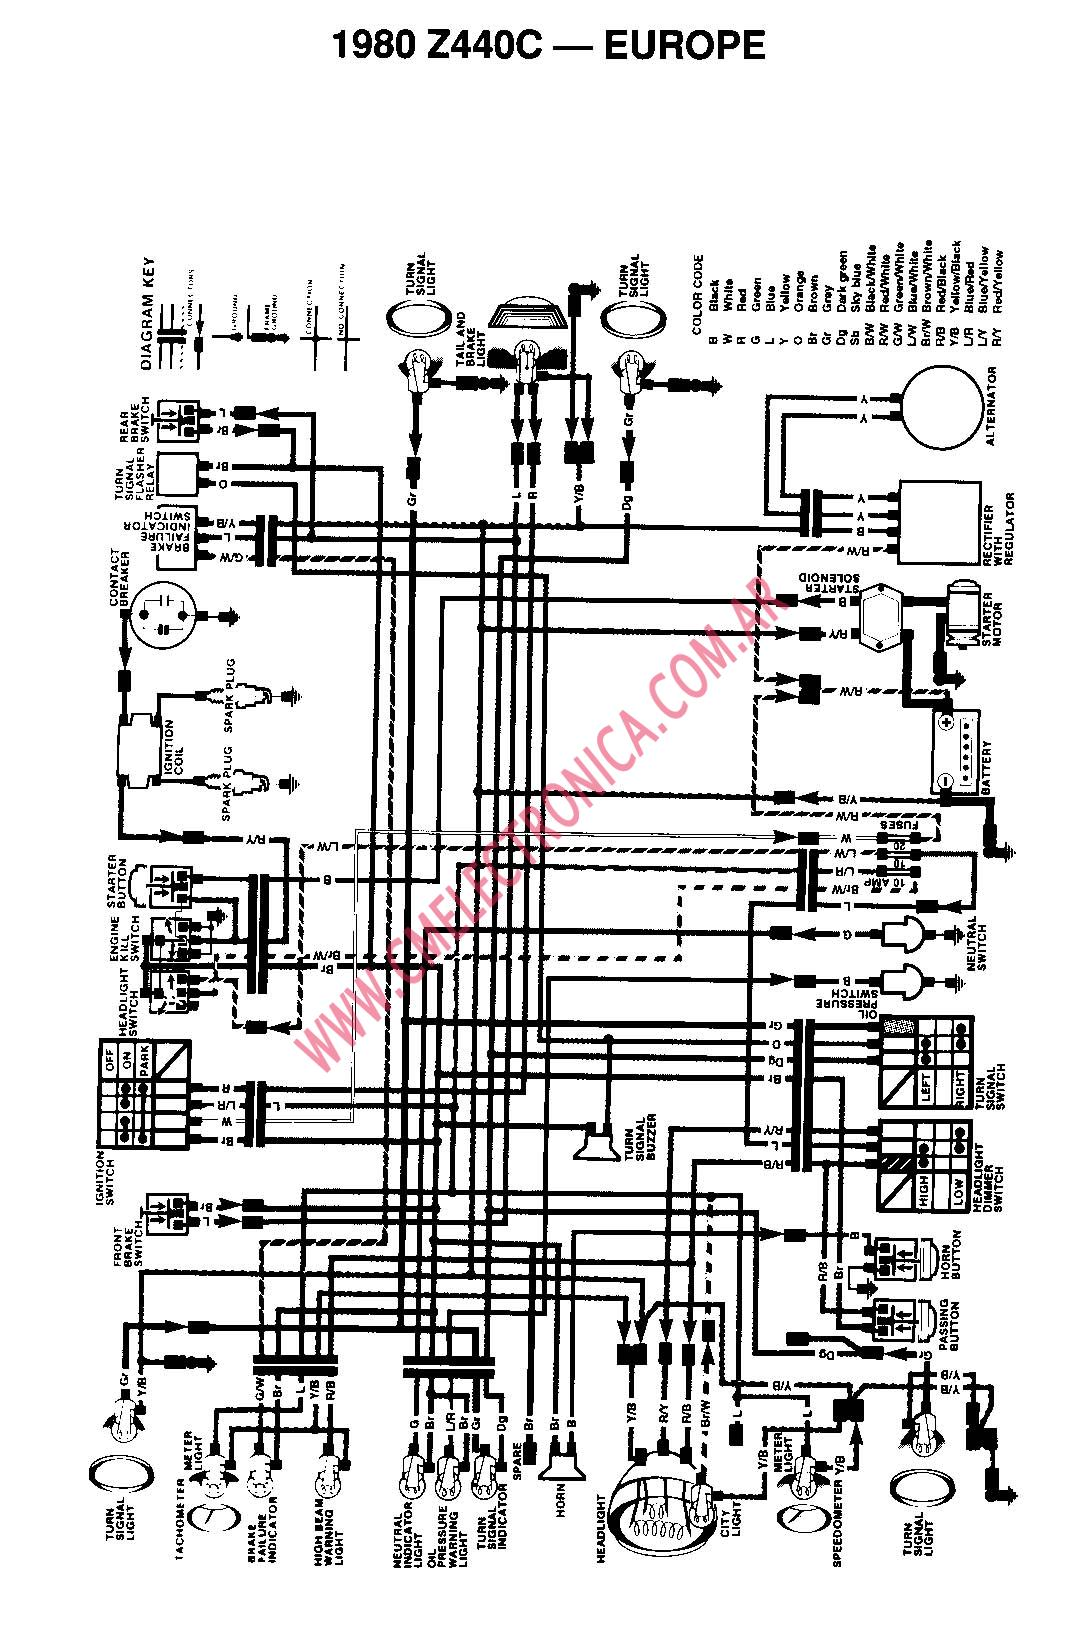 Wiring Diagram Klf 300 And Schematics Kawasaki Bayou 250 1988 Library Honda Motor Atv